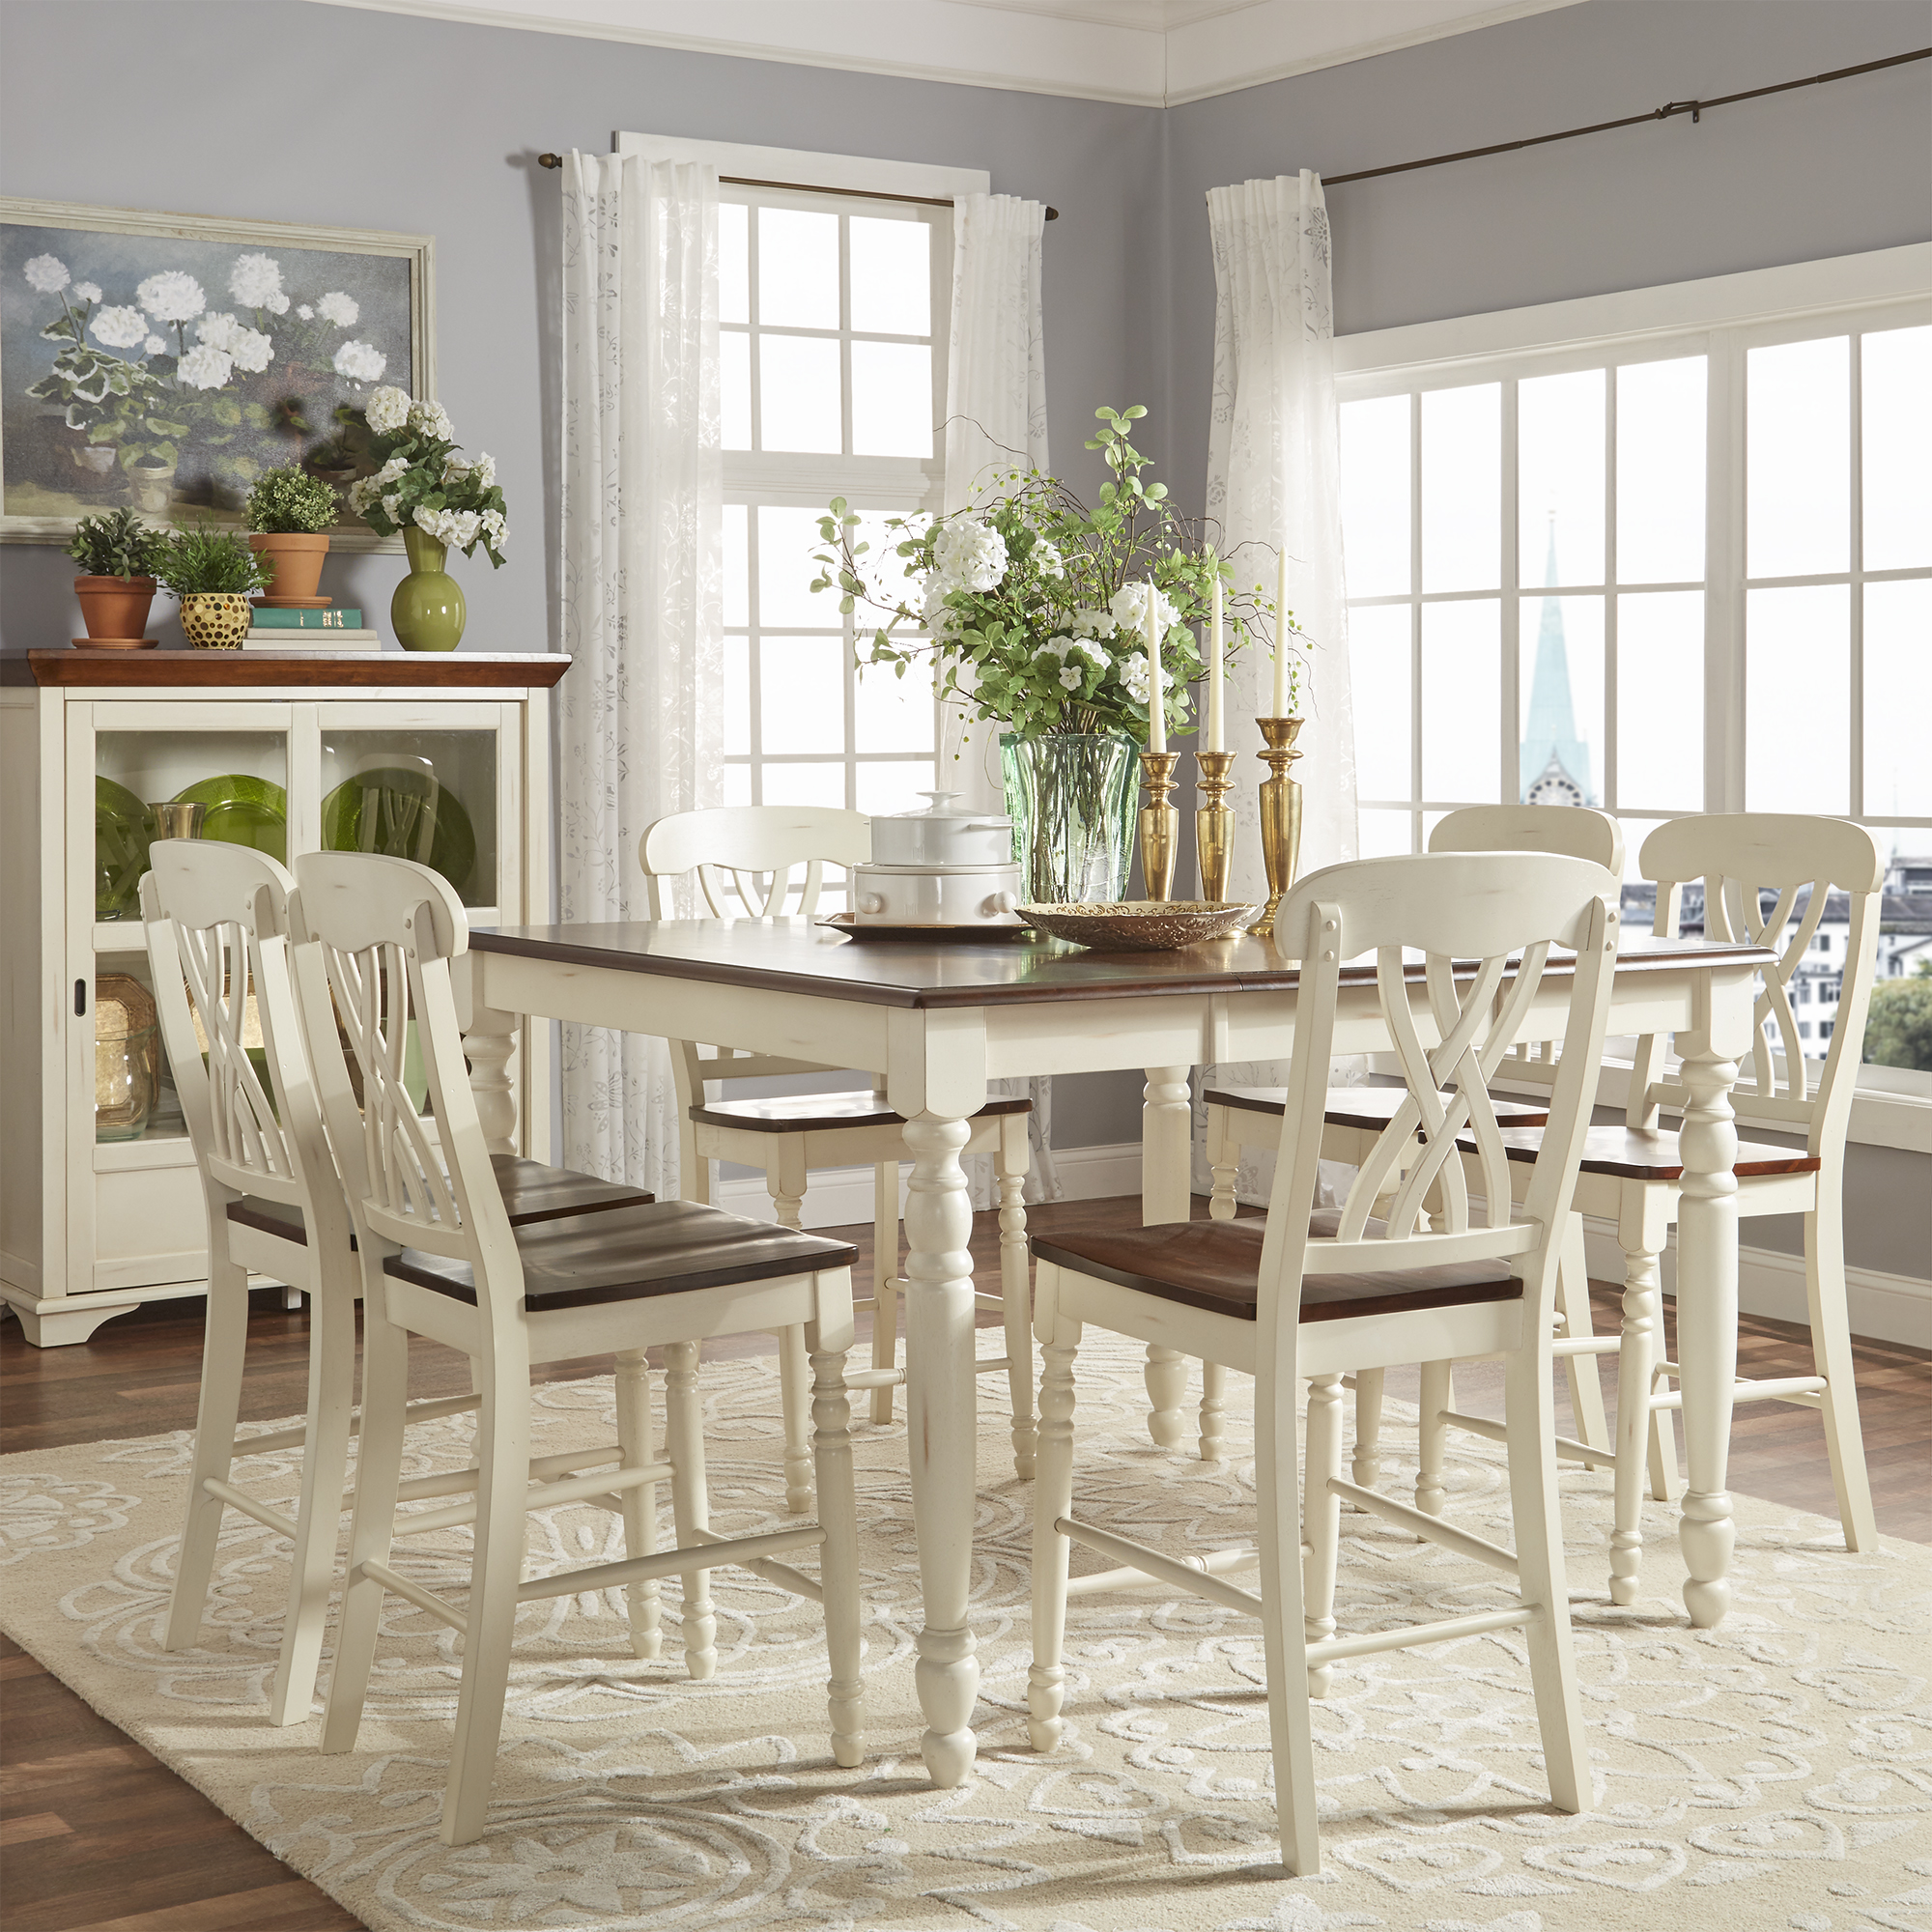 Superbe Weston Home Two Tone 7 Piece Counter Height Dining Set, Antique White